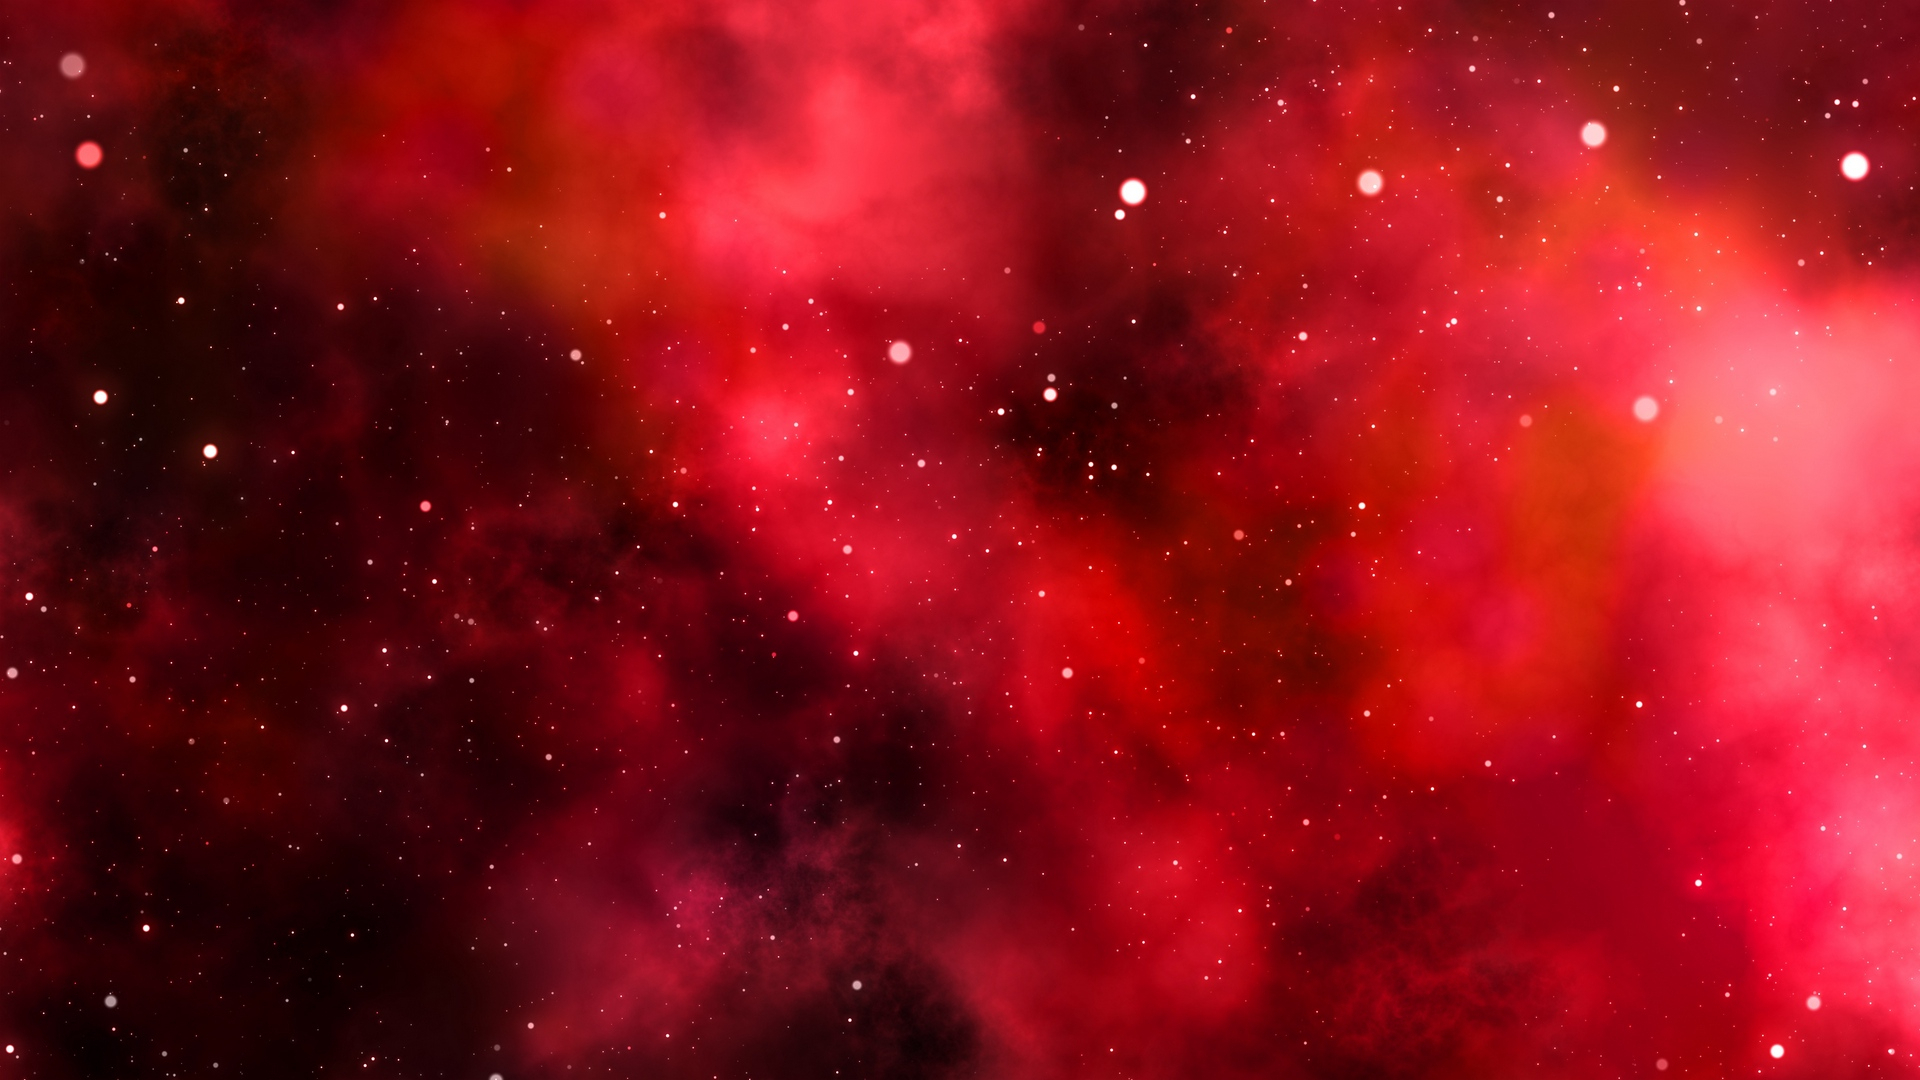 download wallpaper 1920x1080 galaxy, space, red, shine, universe